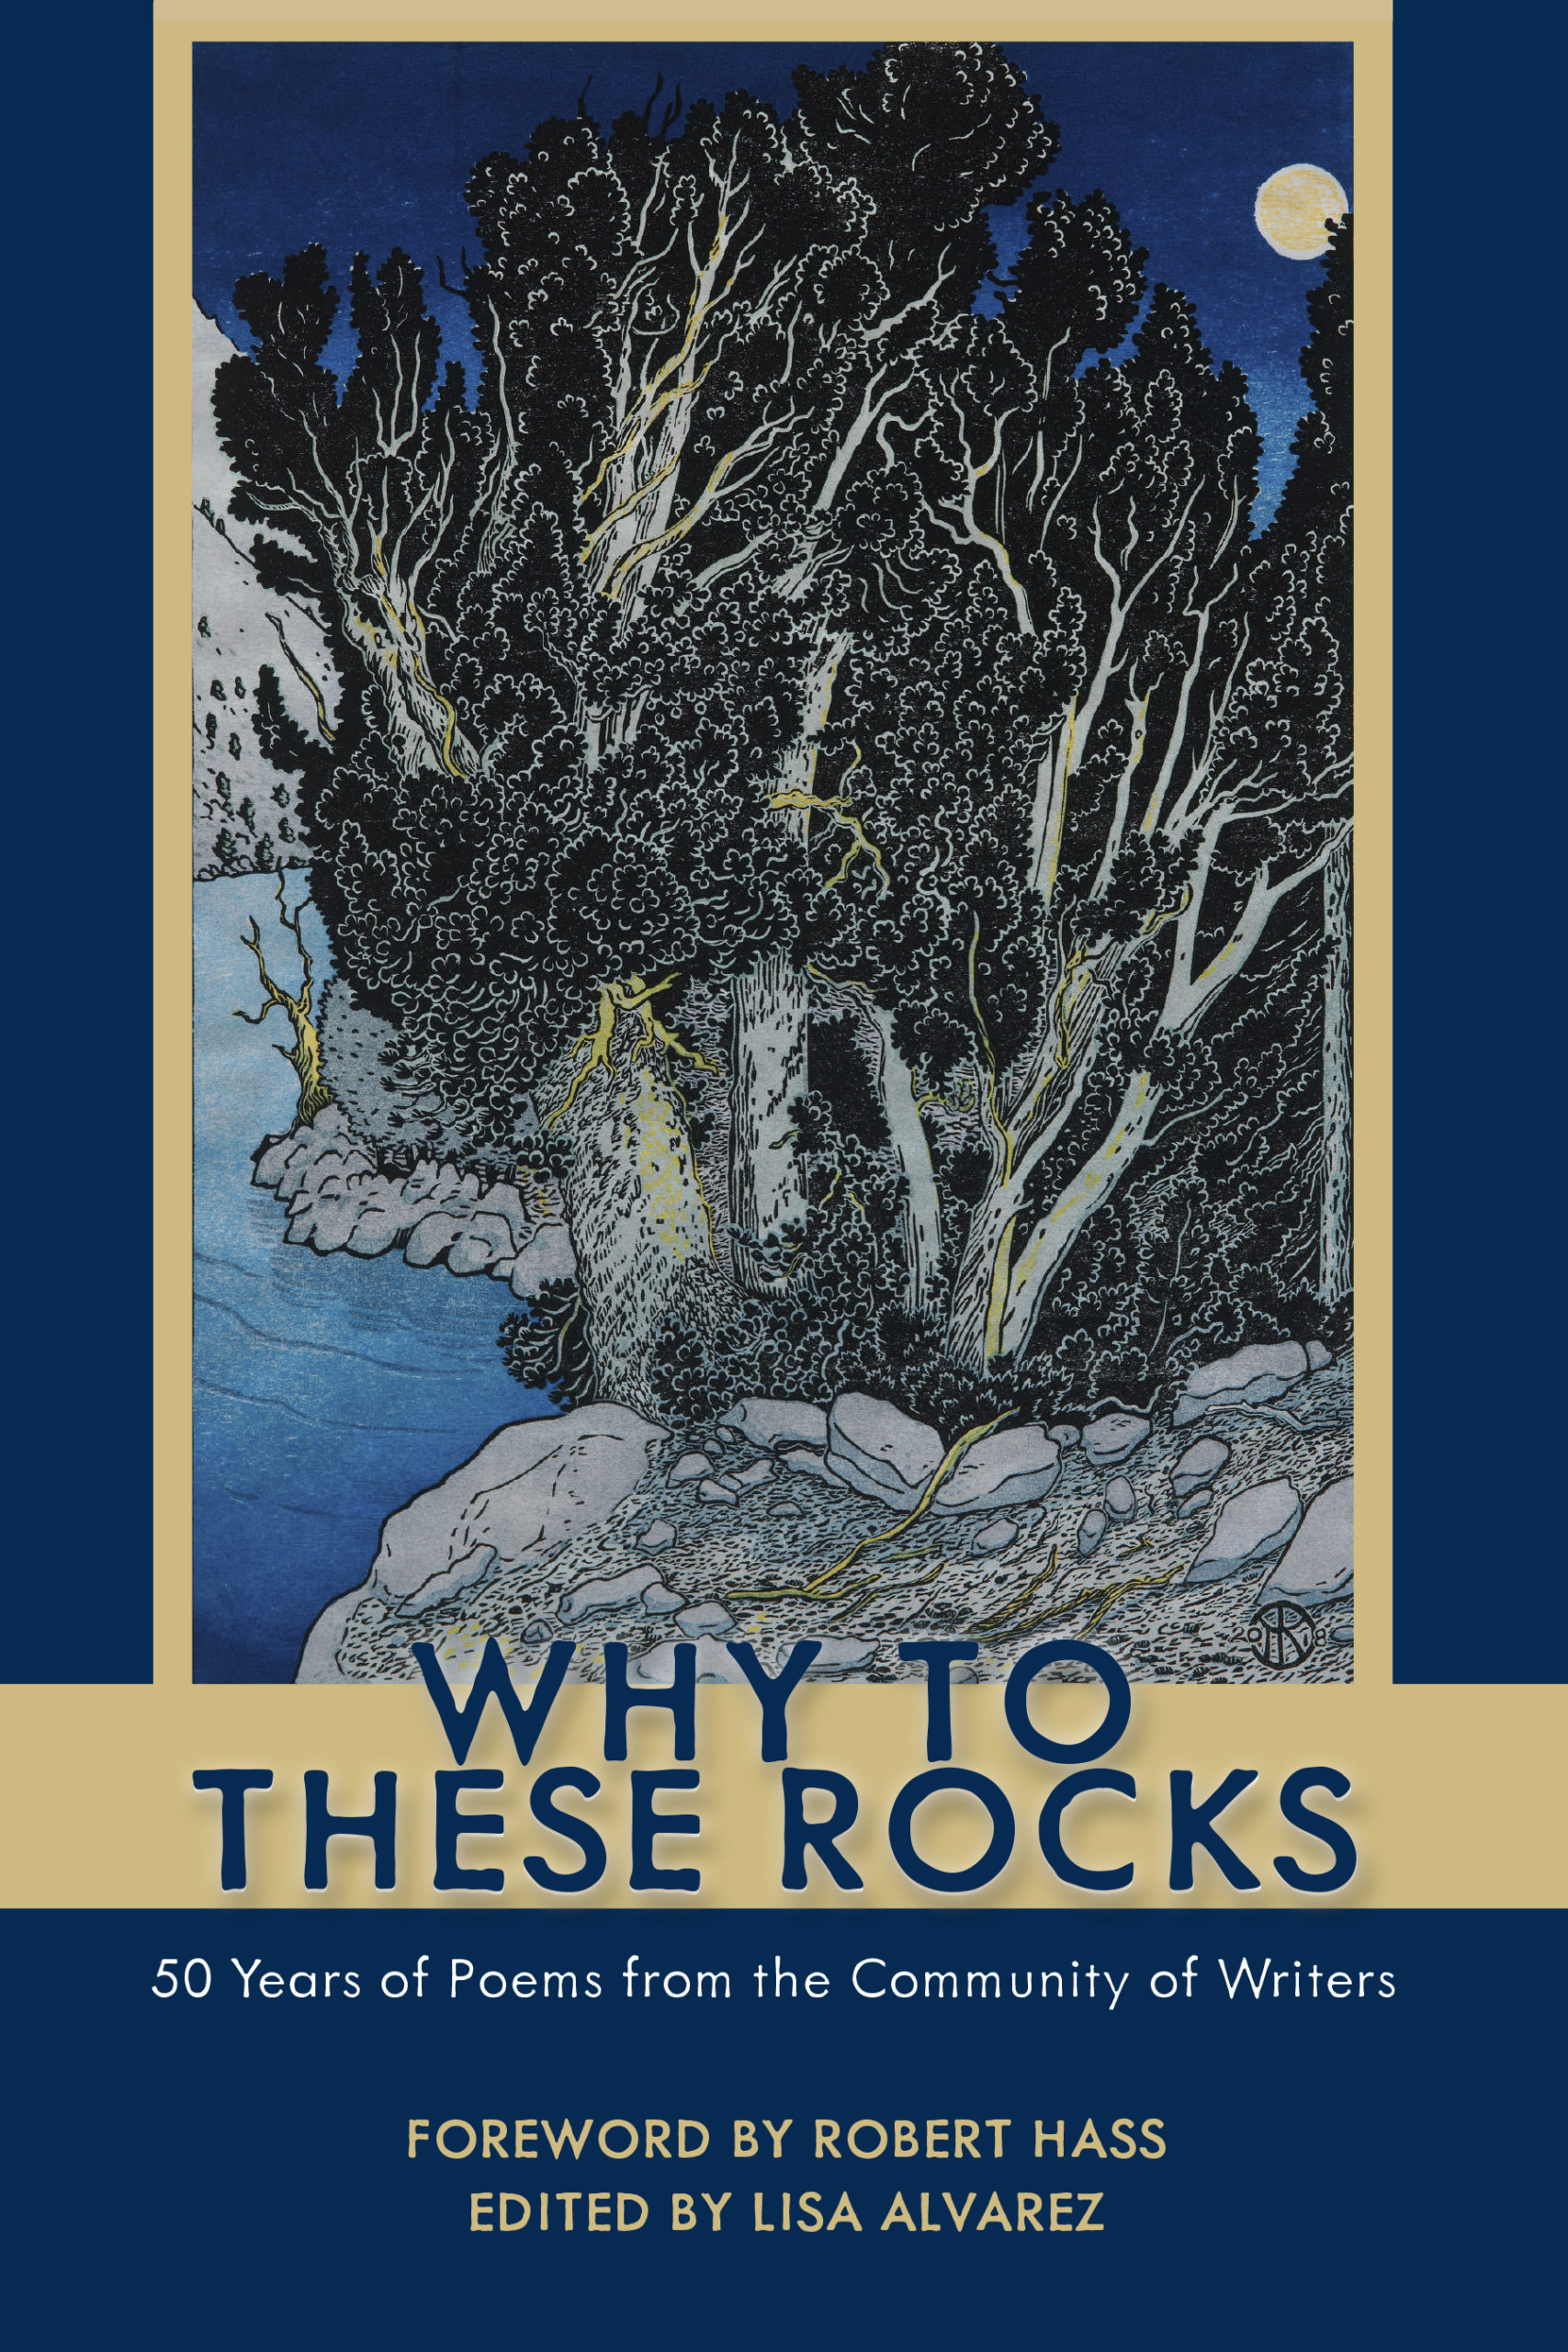 Why to These Rocks